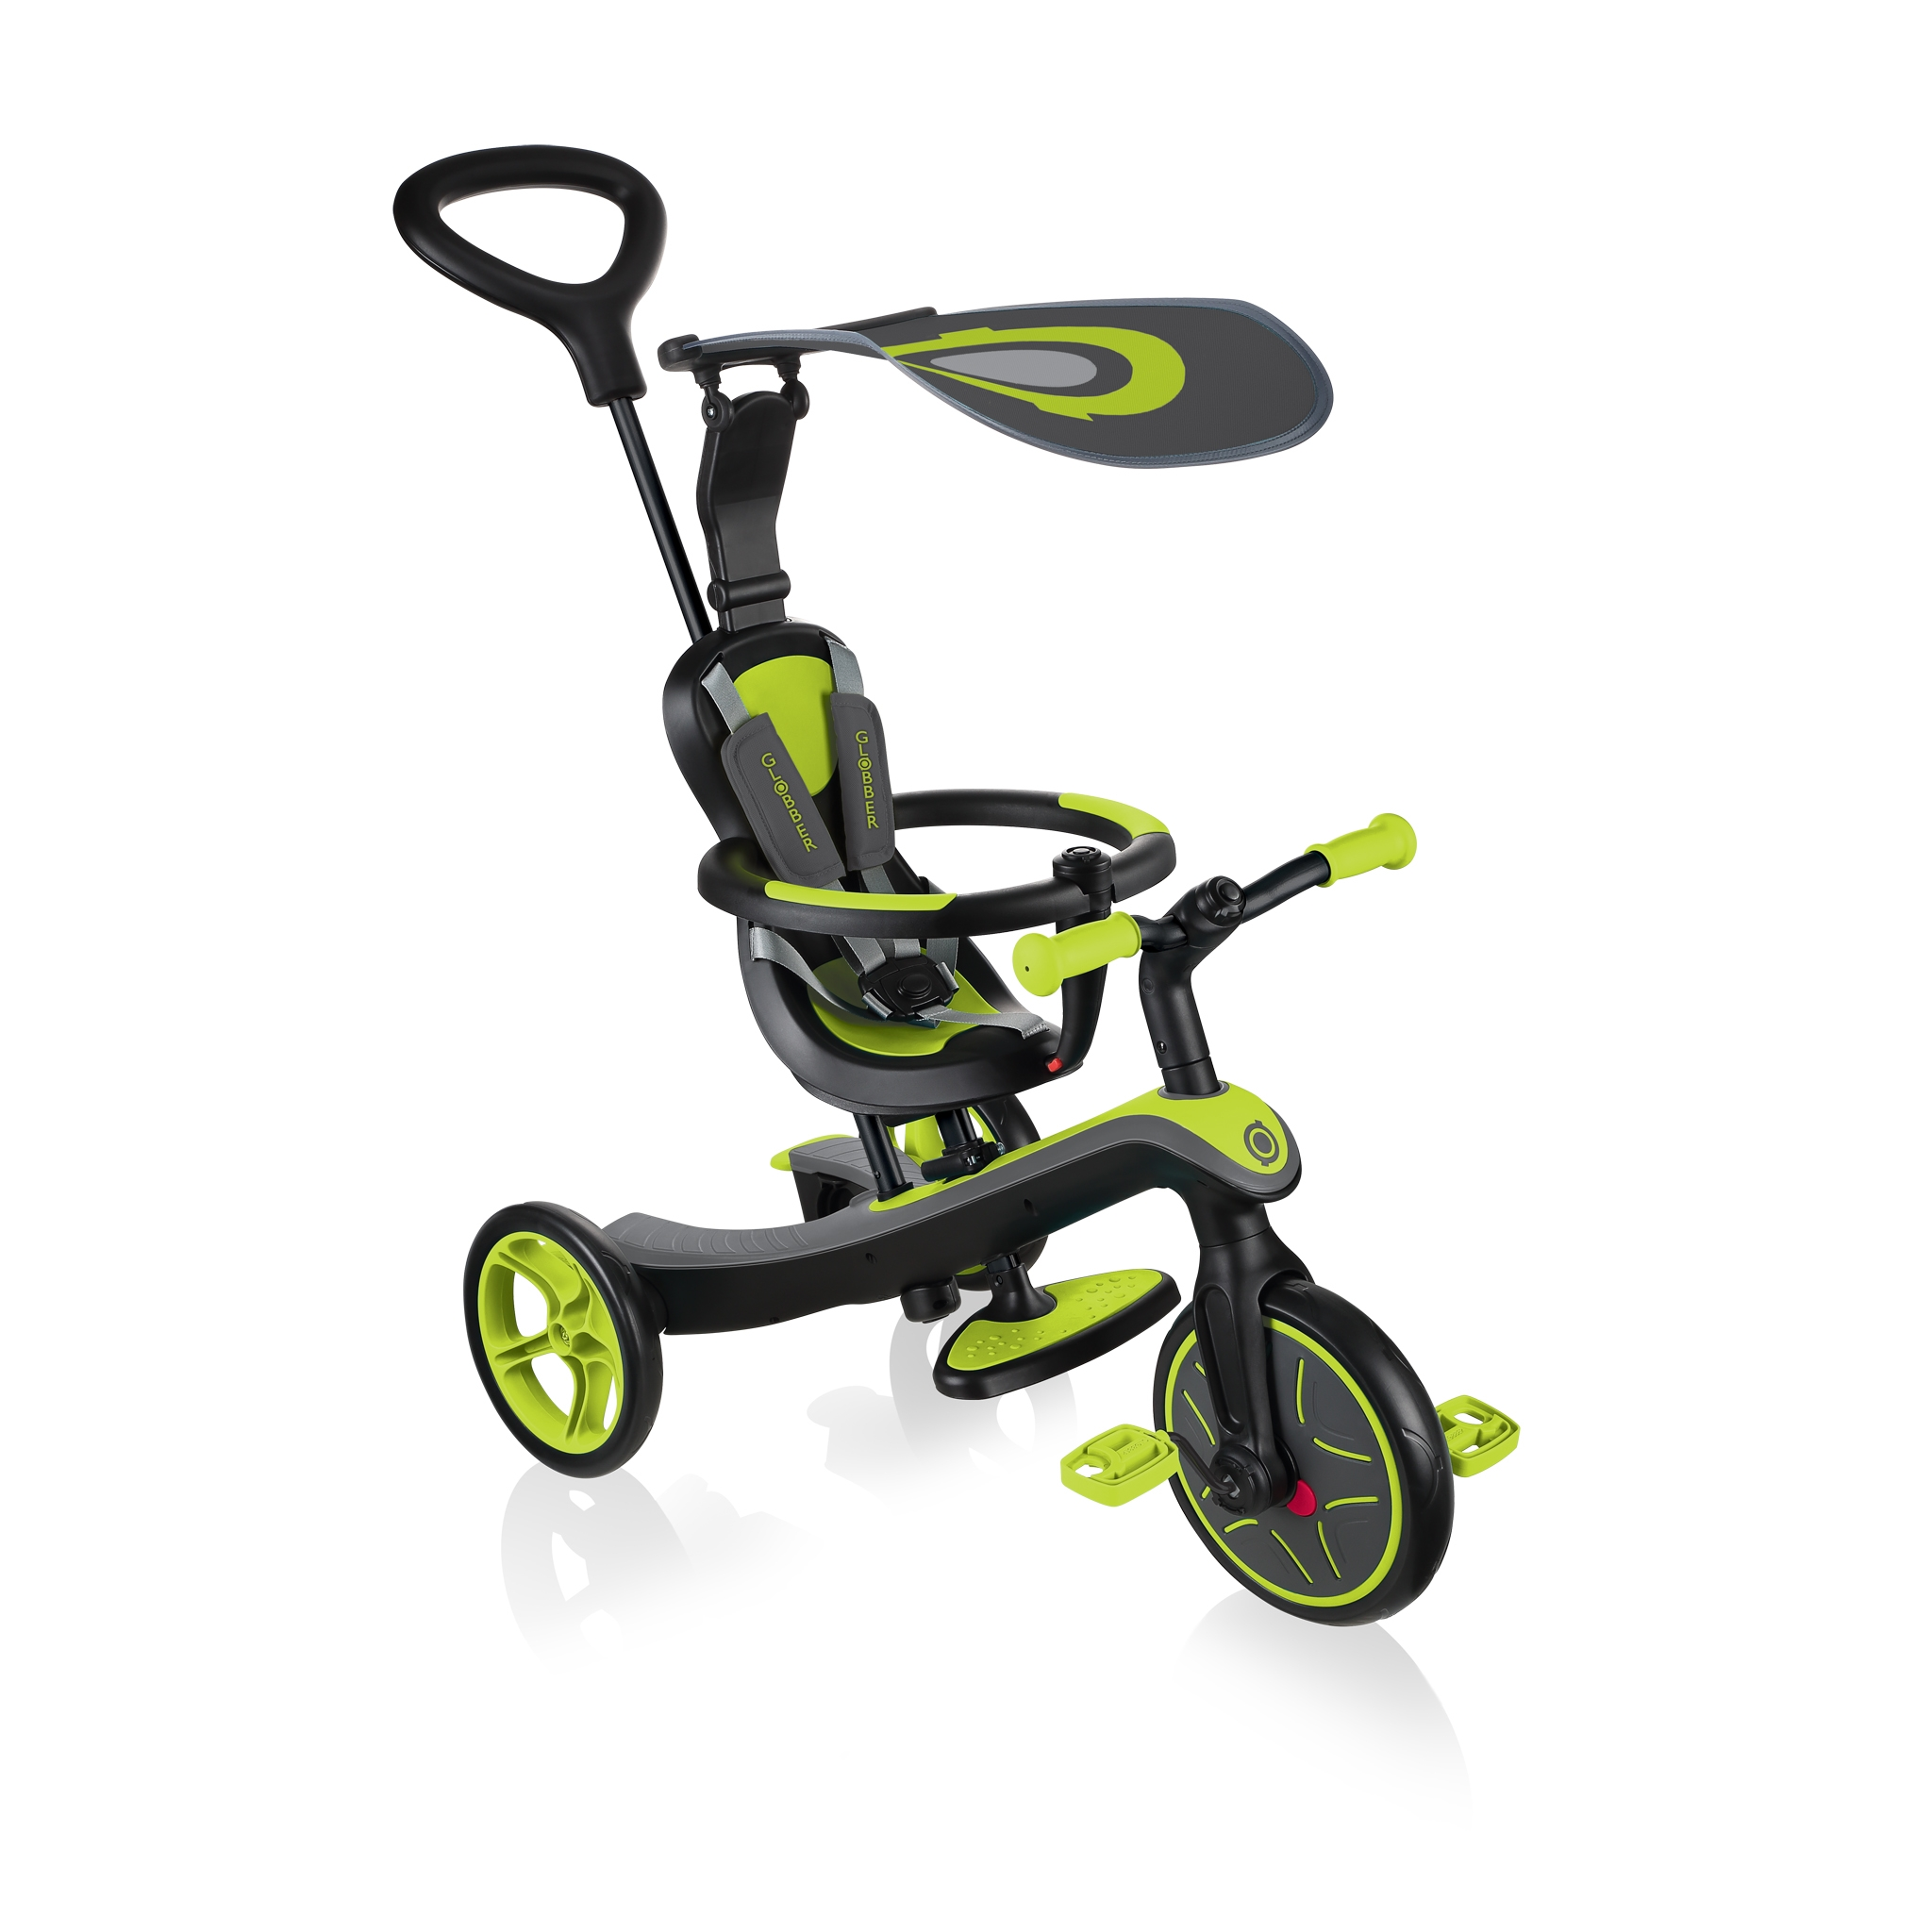 Globber-EXPLORER-TRIKE-4in1-all-in-one-baby-tricycle-and-kids-balance-bike-stage1-infant-trike_lime-green